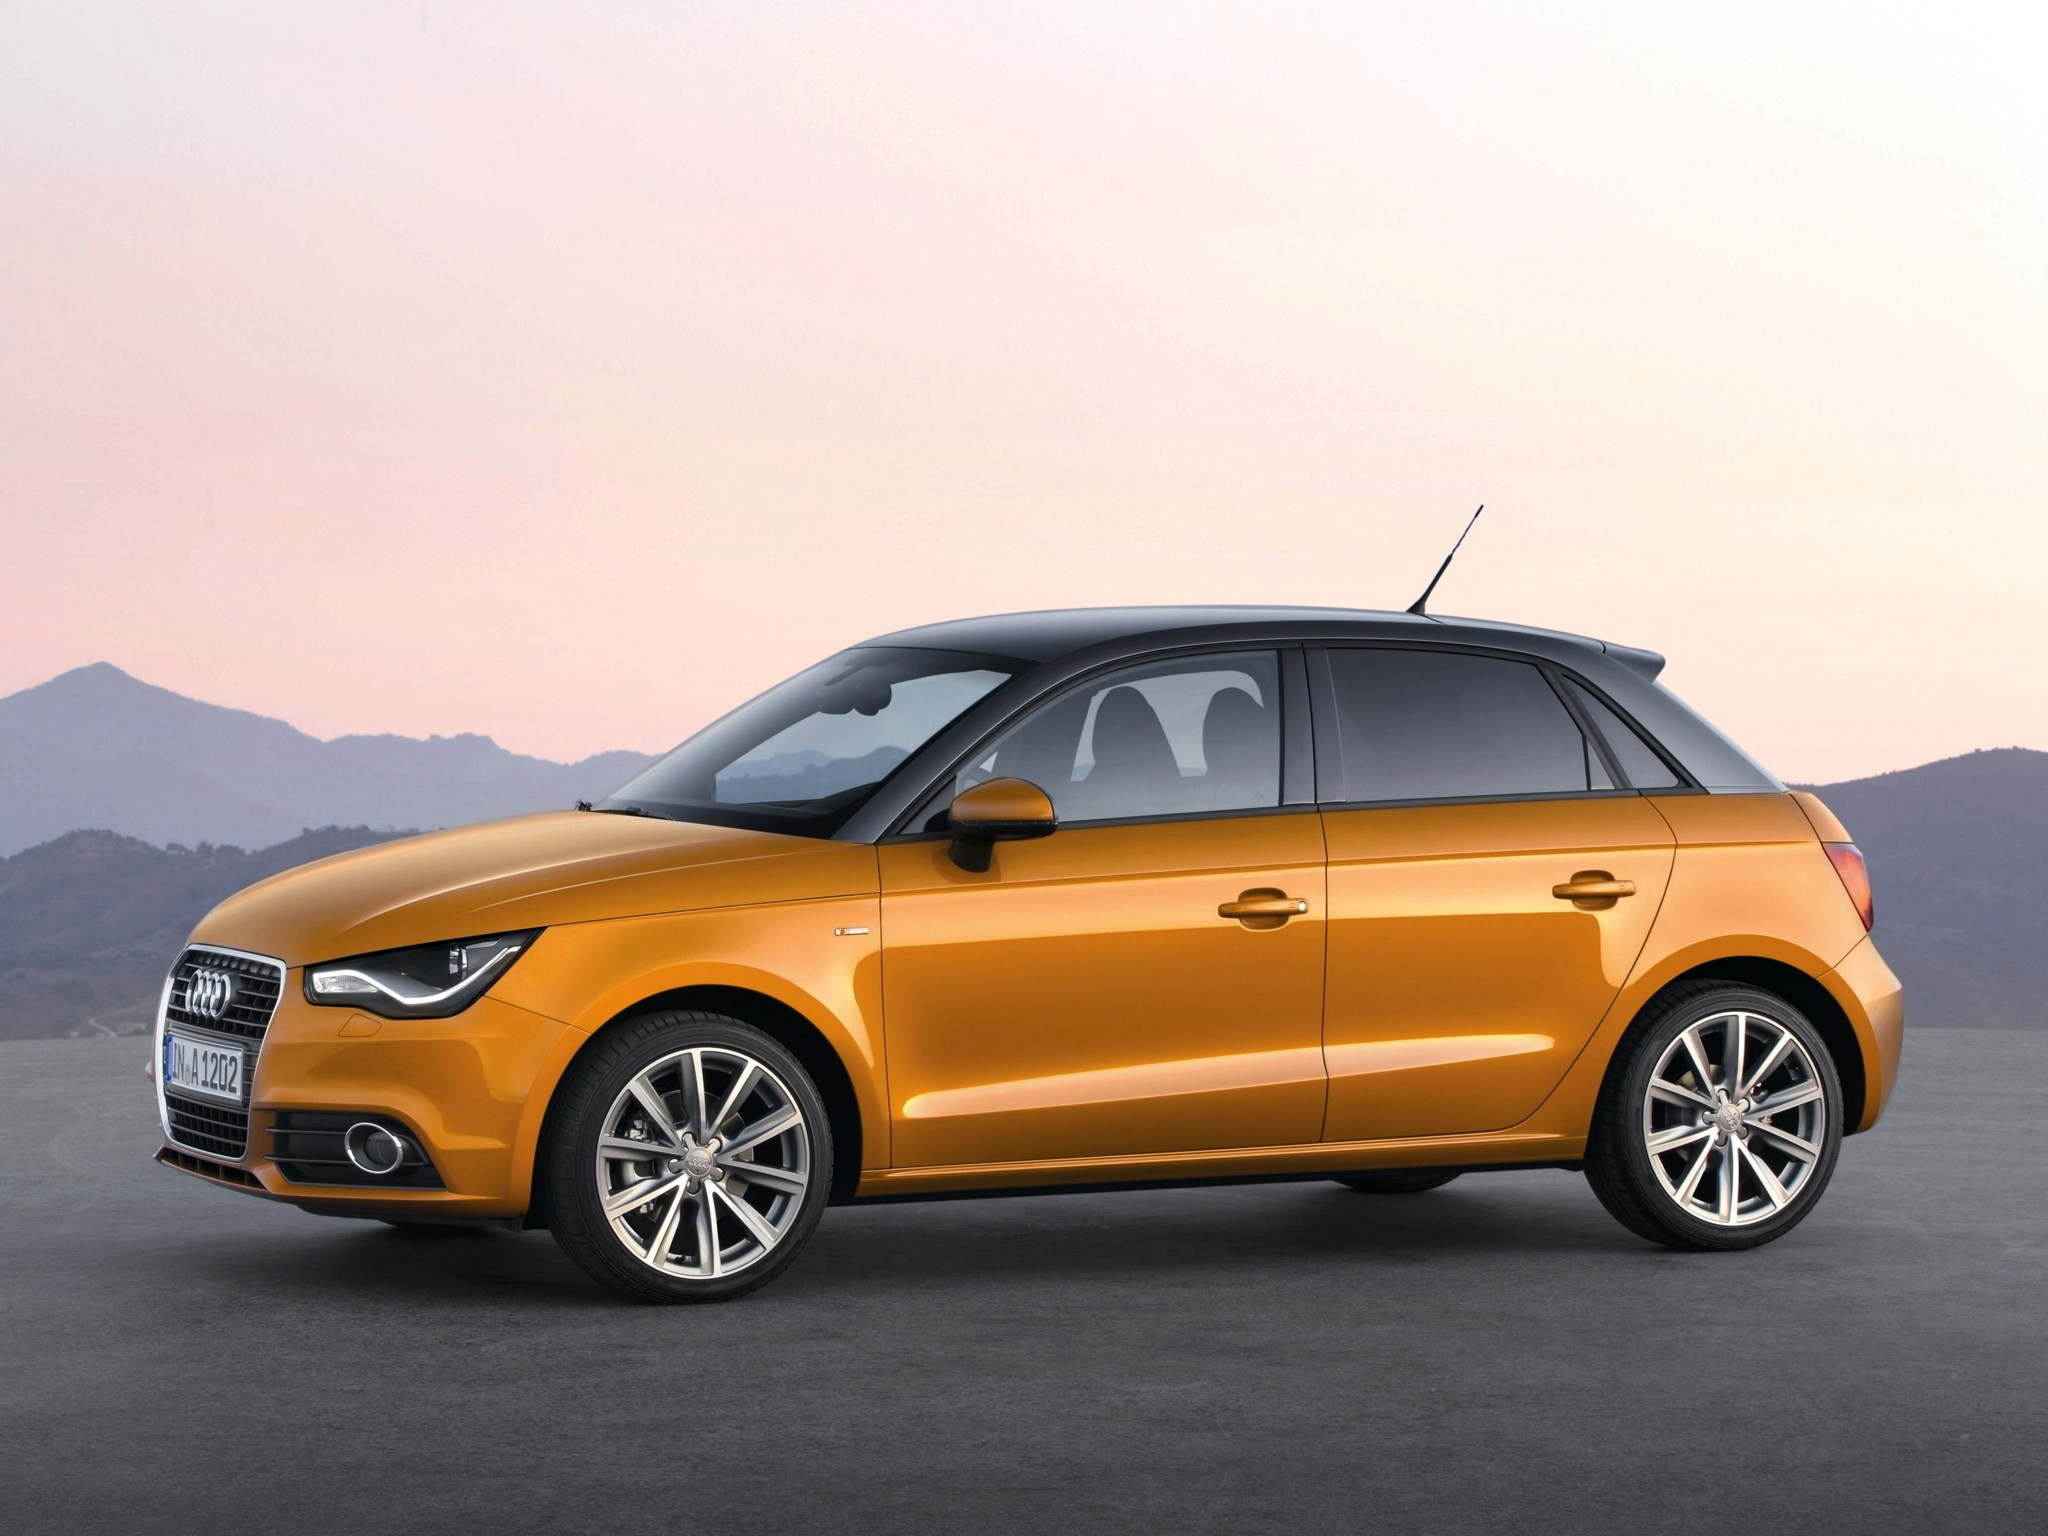 audi a1 sportback 5 doors specs 2012 2013 2014 2015 2016 2017 autoevolution. Black Bedroom Furniture Sets. Home Design Ideas